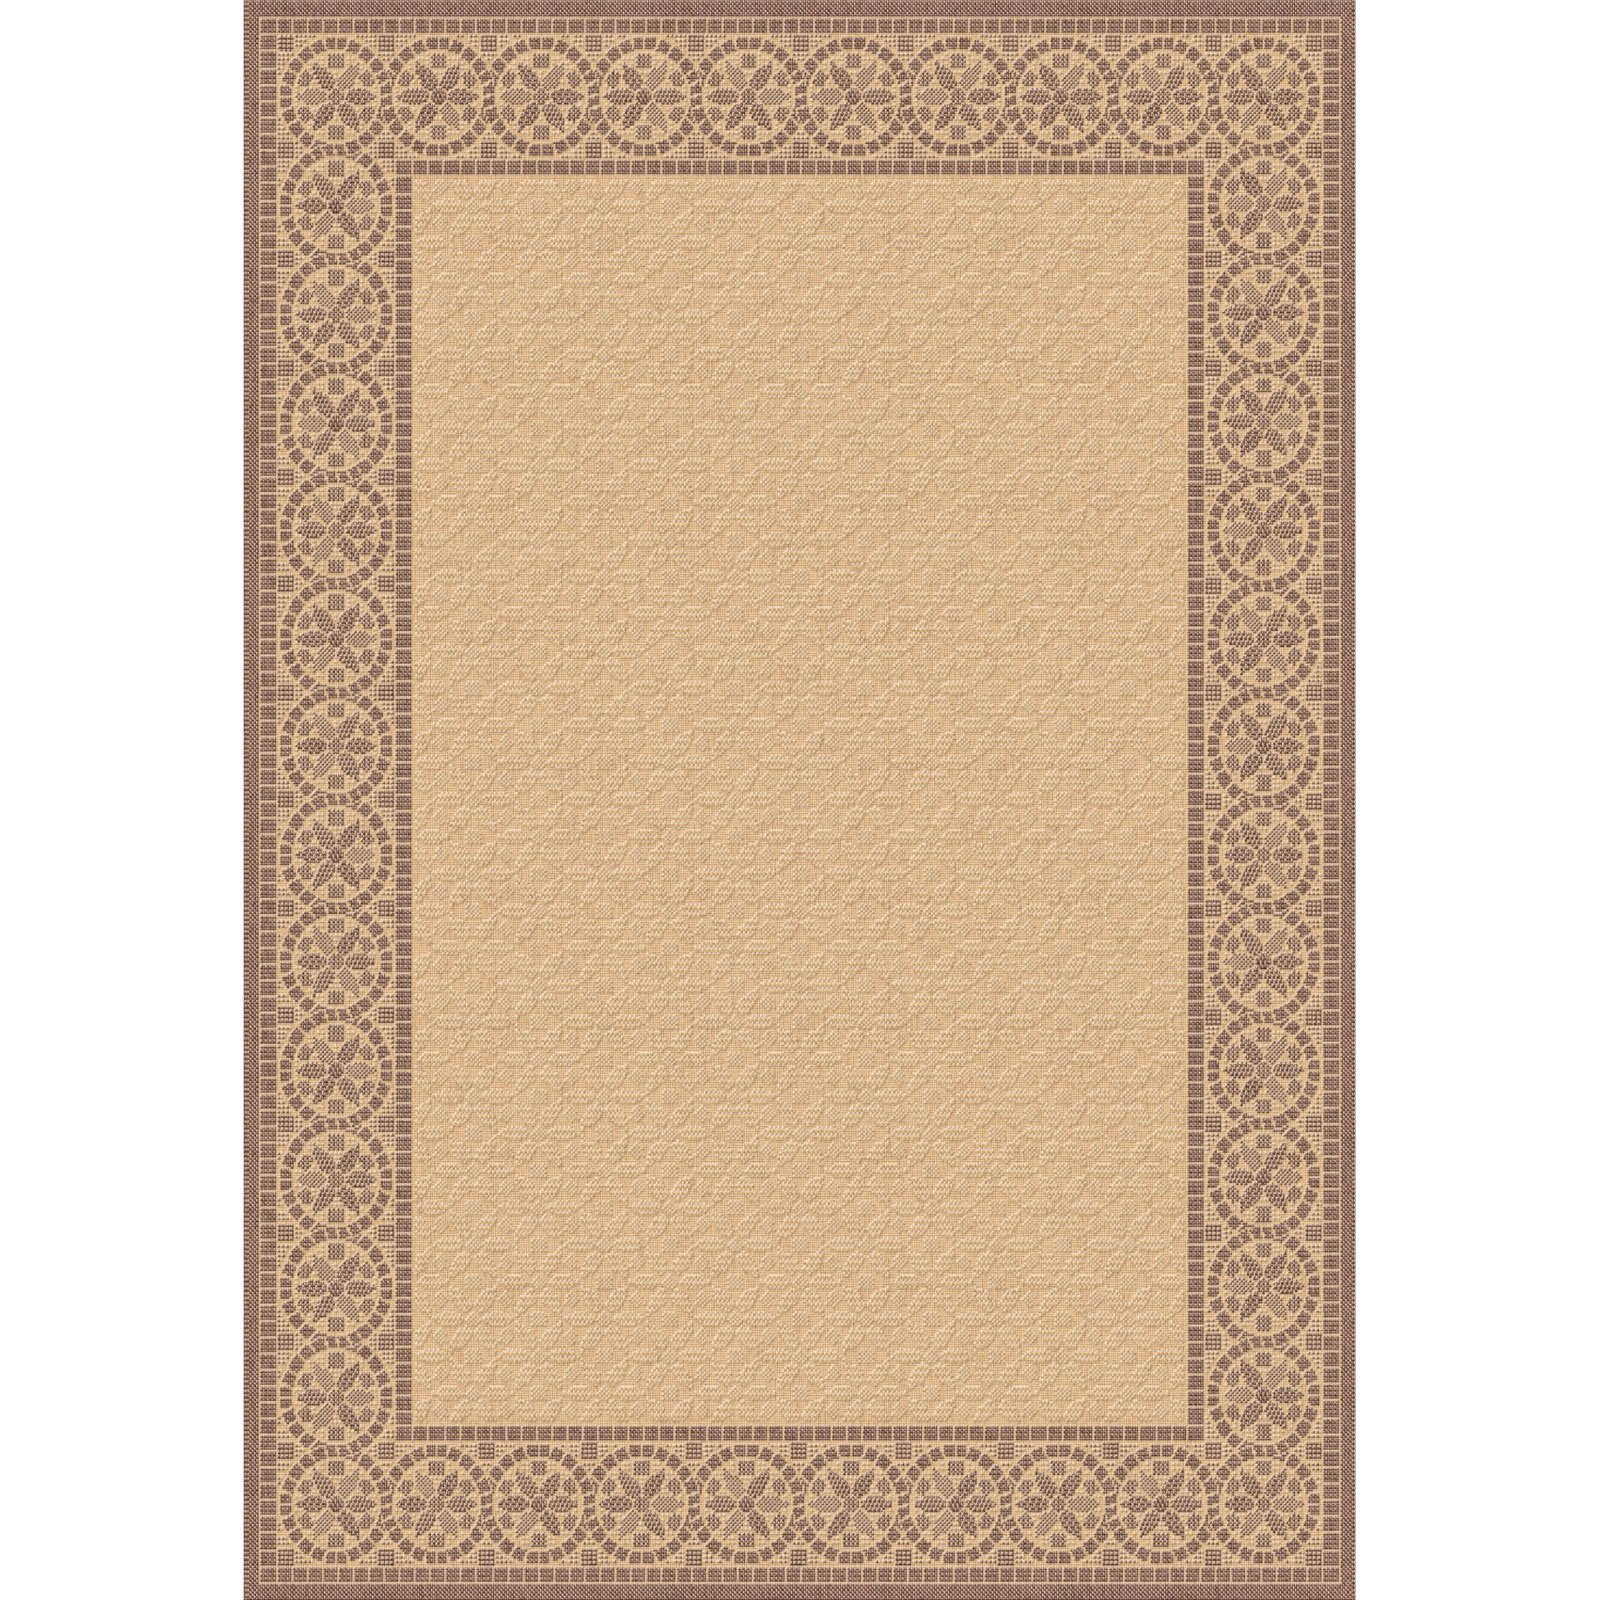 Dynamic Rugs Piazza Mosaic Indoor/Outdoor Area Rug - Natural/Brown